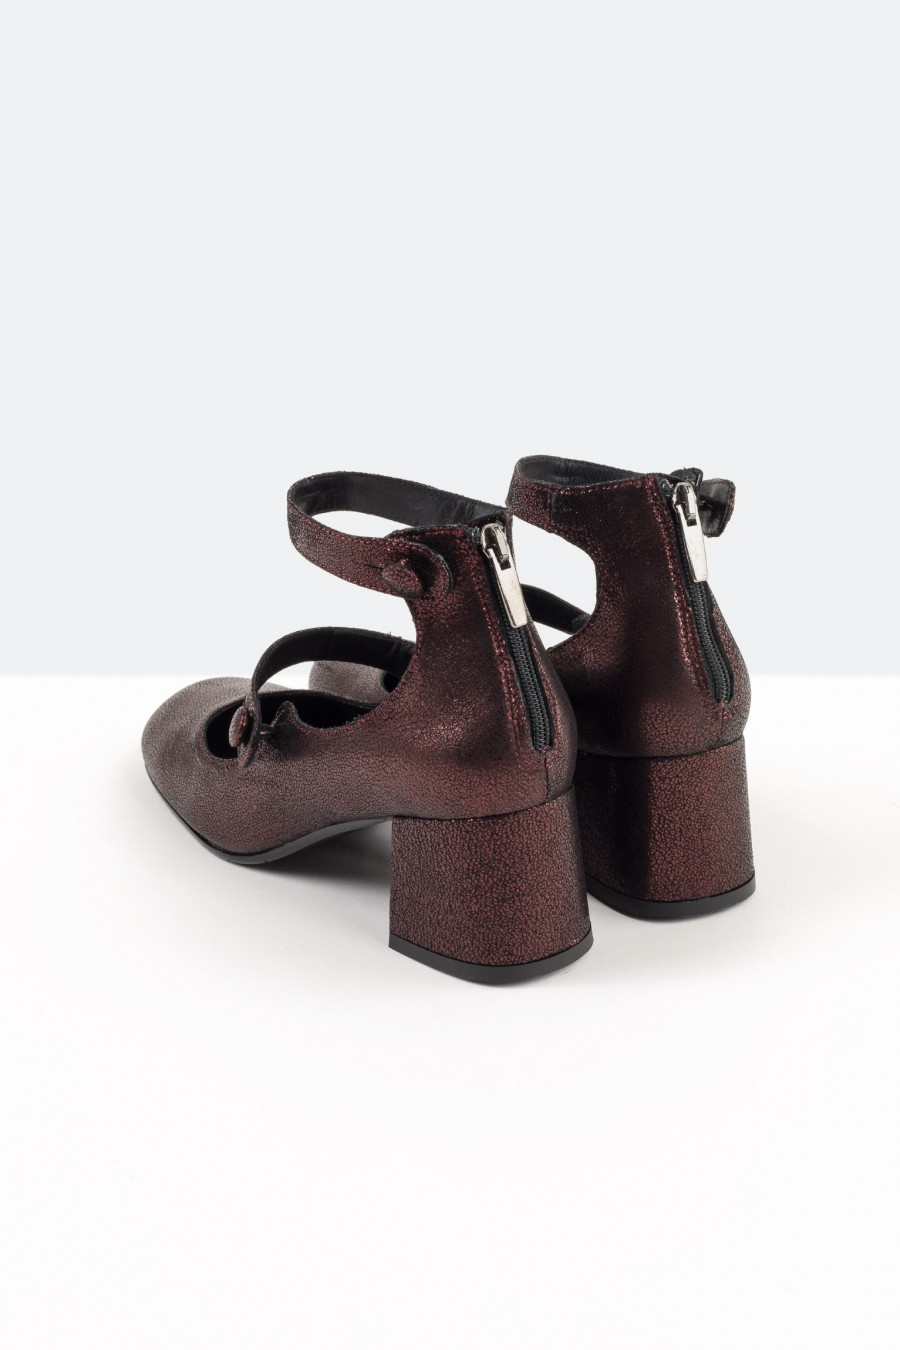 Burgundy metallic leather shoes with ankle straps